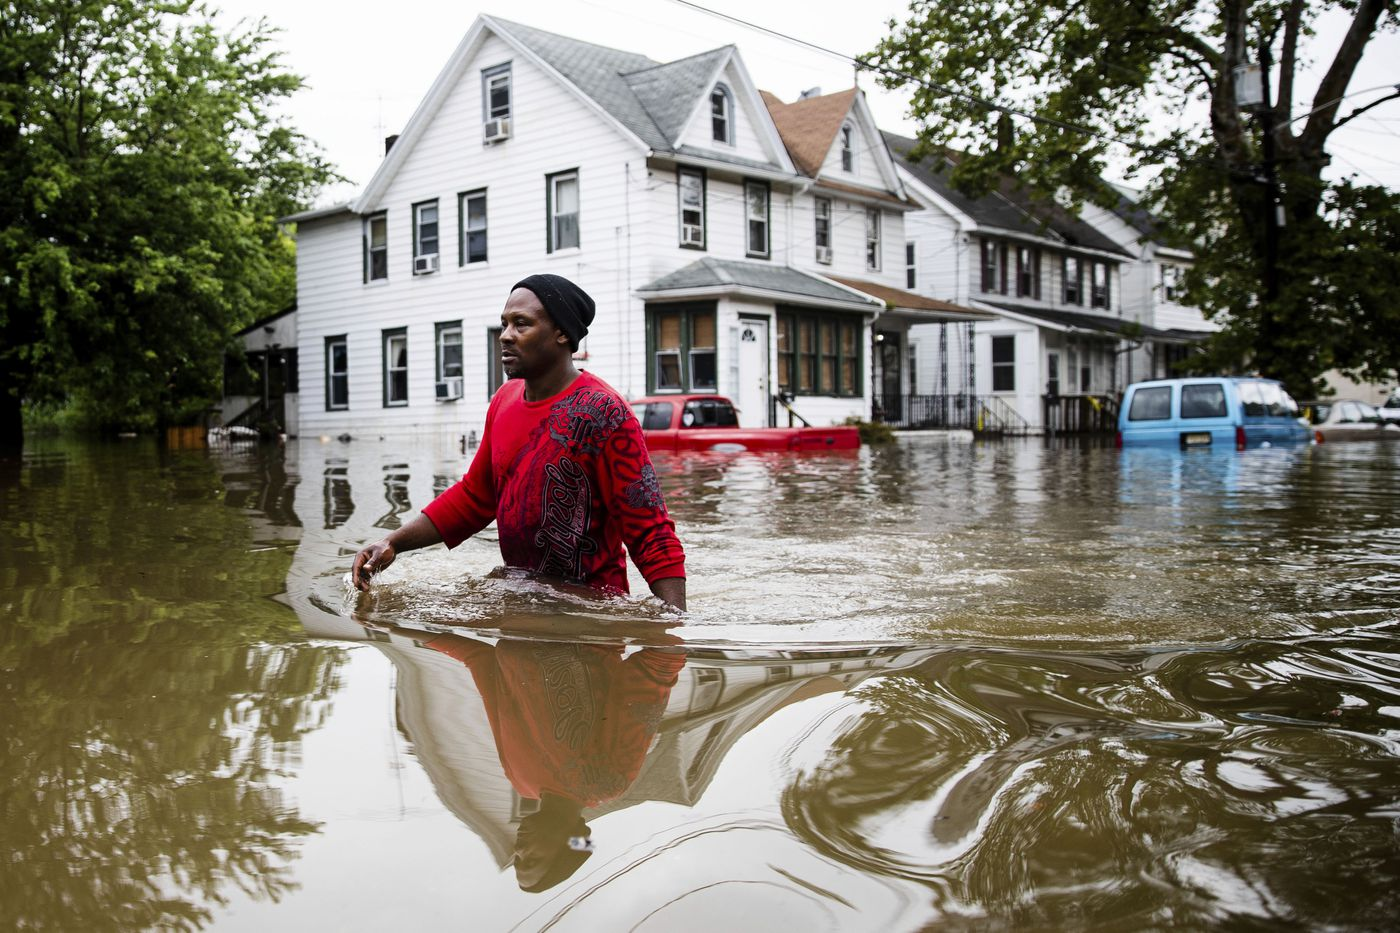 Chris Smith makes his way through floodwaters to the Macedonia Baptist Church in Westville, N.J., Thursday, June 20, 2019. Severe storms with heavy rains and strong winds spurred flooding across southern New Jersey, disrupting travel and damaging some property. (AP Photo/Matt Rourke)